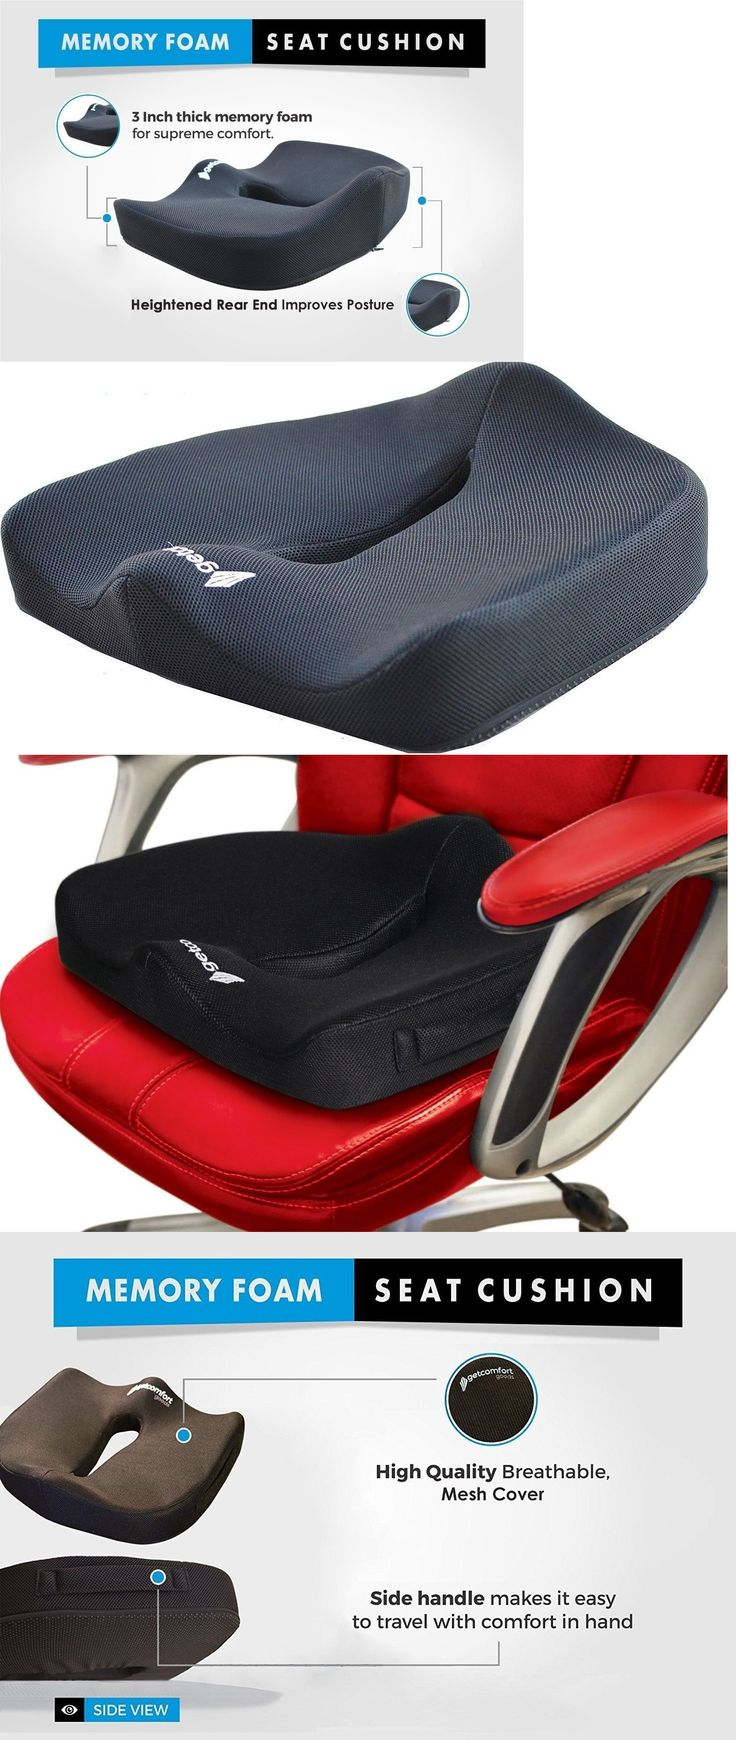 Seat And Posture Cushions Office Chair Cushion Memory Foam Coccyx Orthopedic Car Pain Relief